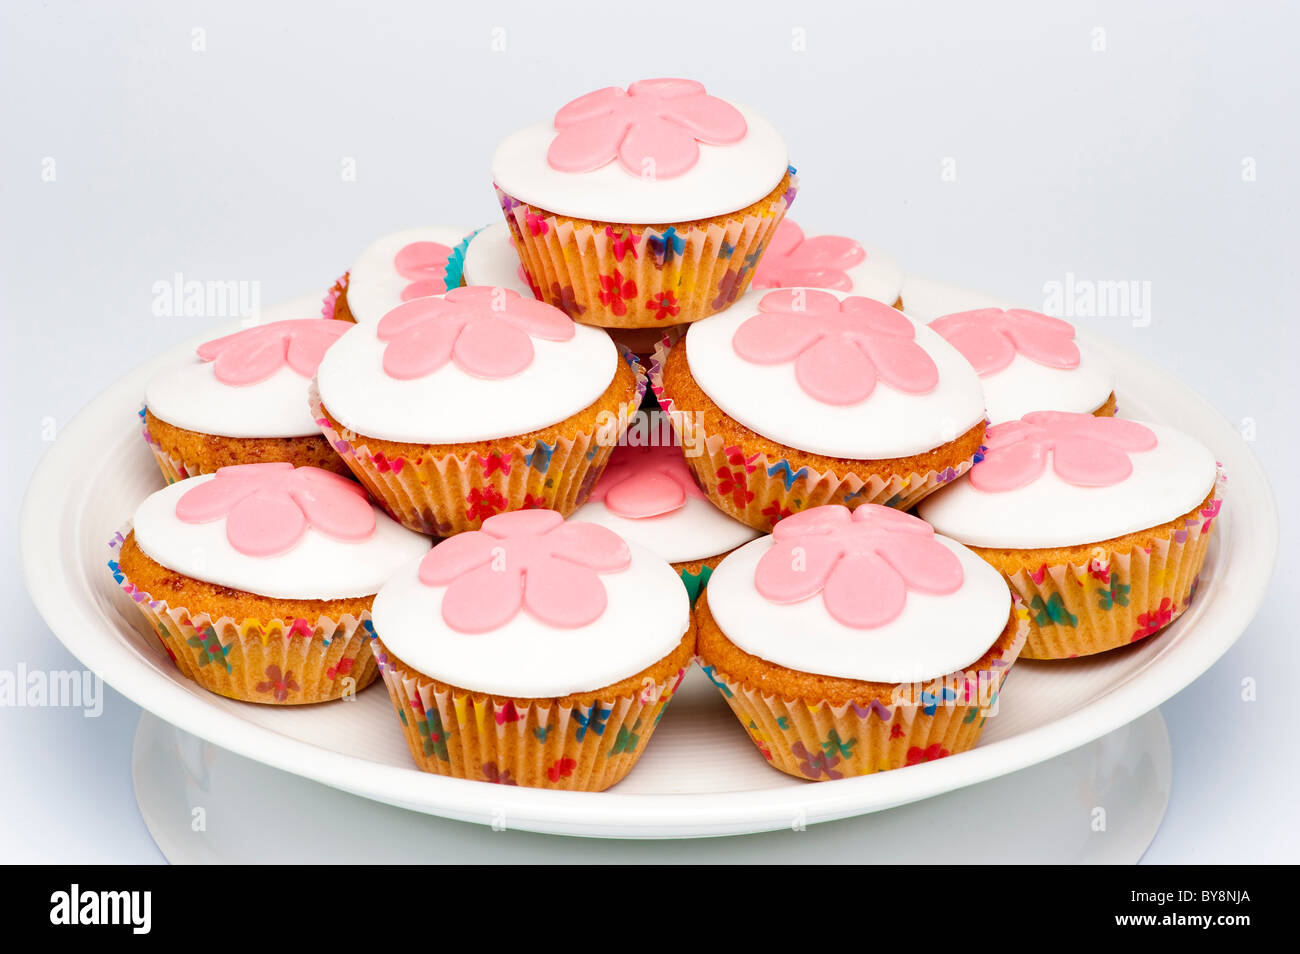 White Iced Buns With Pink Icing Flowers Stock Photo 33998674 Alamy